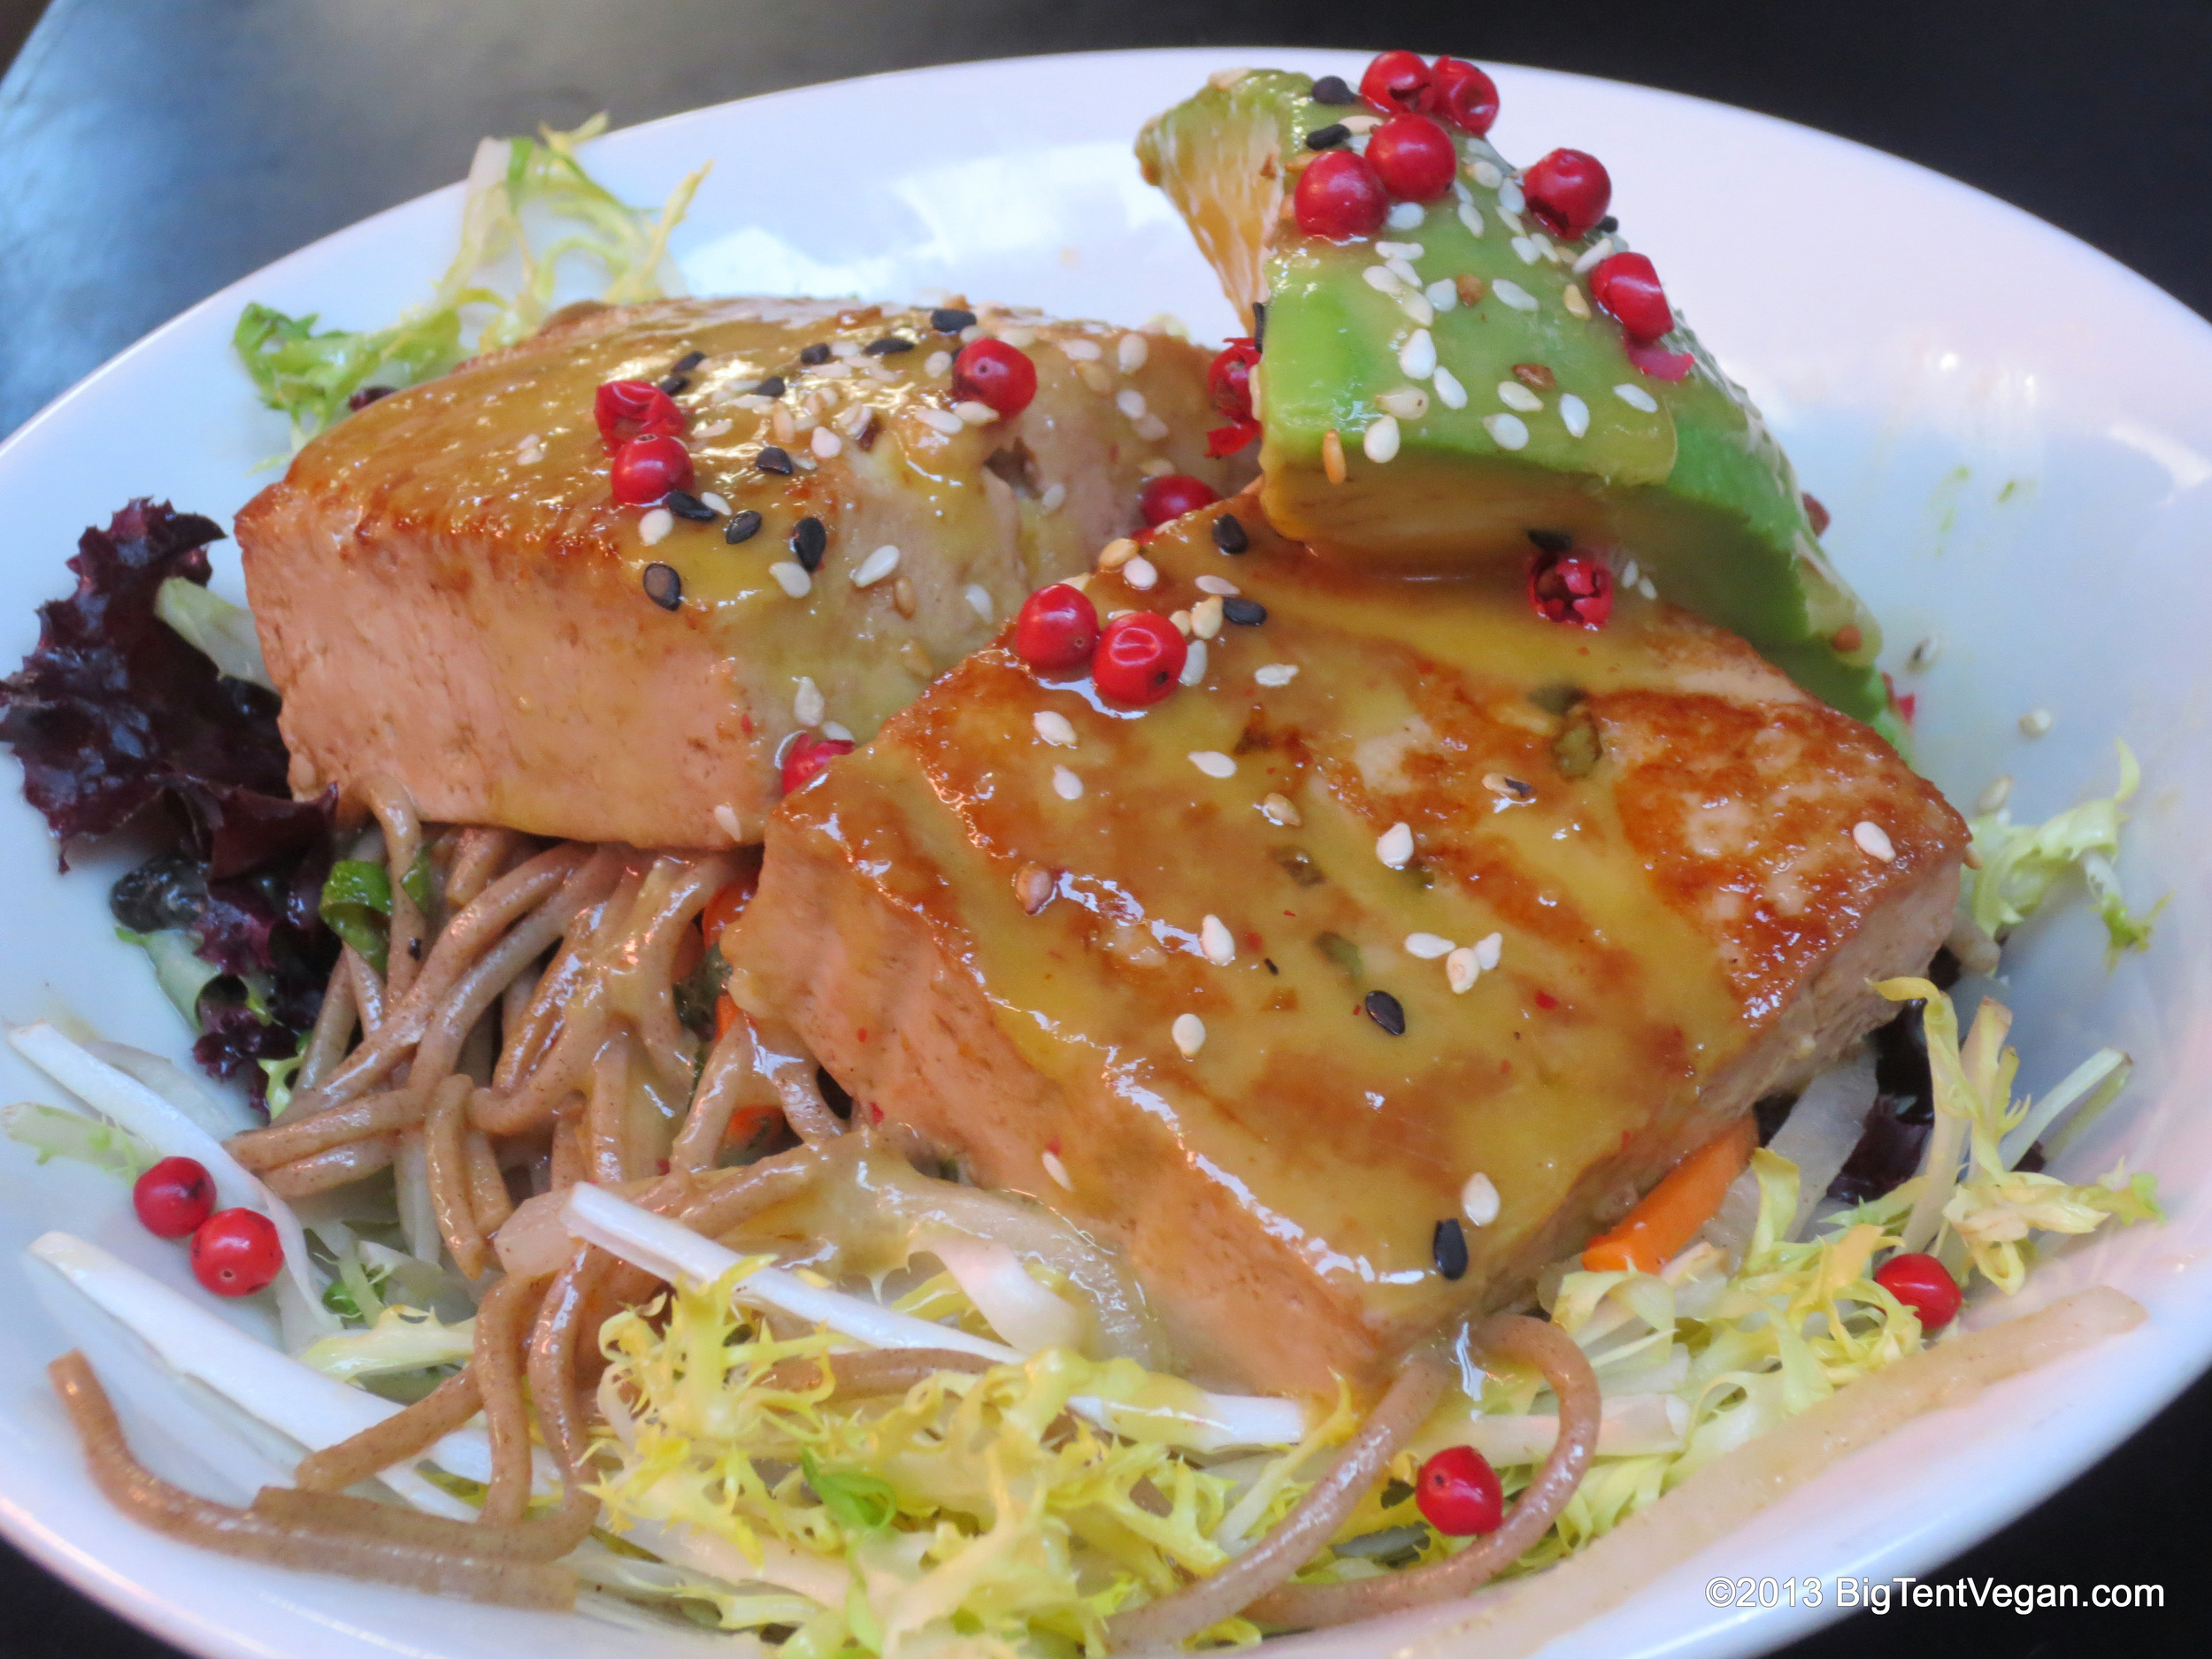 Tataki Tofu with Miso Mustard Sauce and Toasted Pink Peppercorns, Chef Kajsa Alger and Chef Susan Feniger, Street (Los Angeles, CA)